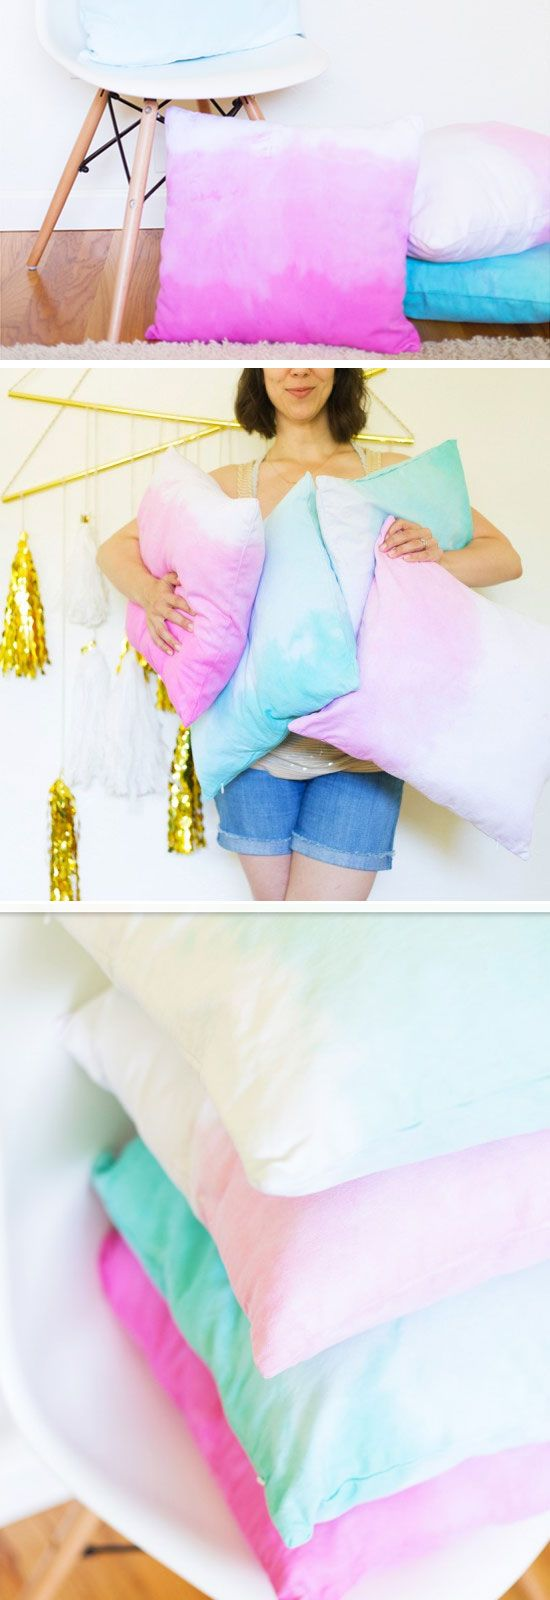 Decorative Pillows For Dorm Rooms : Ombre Throw Pillows DIY Dorm Room Ideas for Girls Awesome Ideas For The Home Pinterest ...